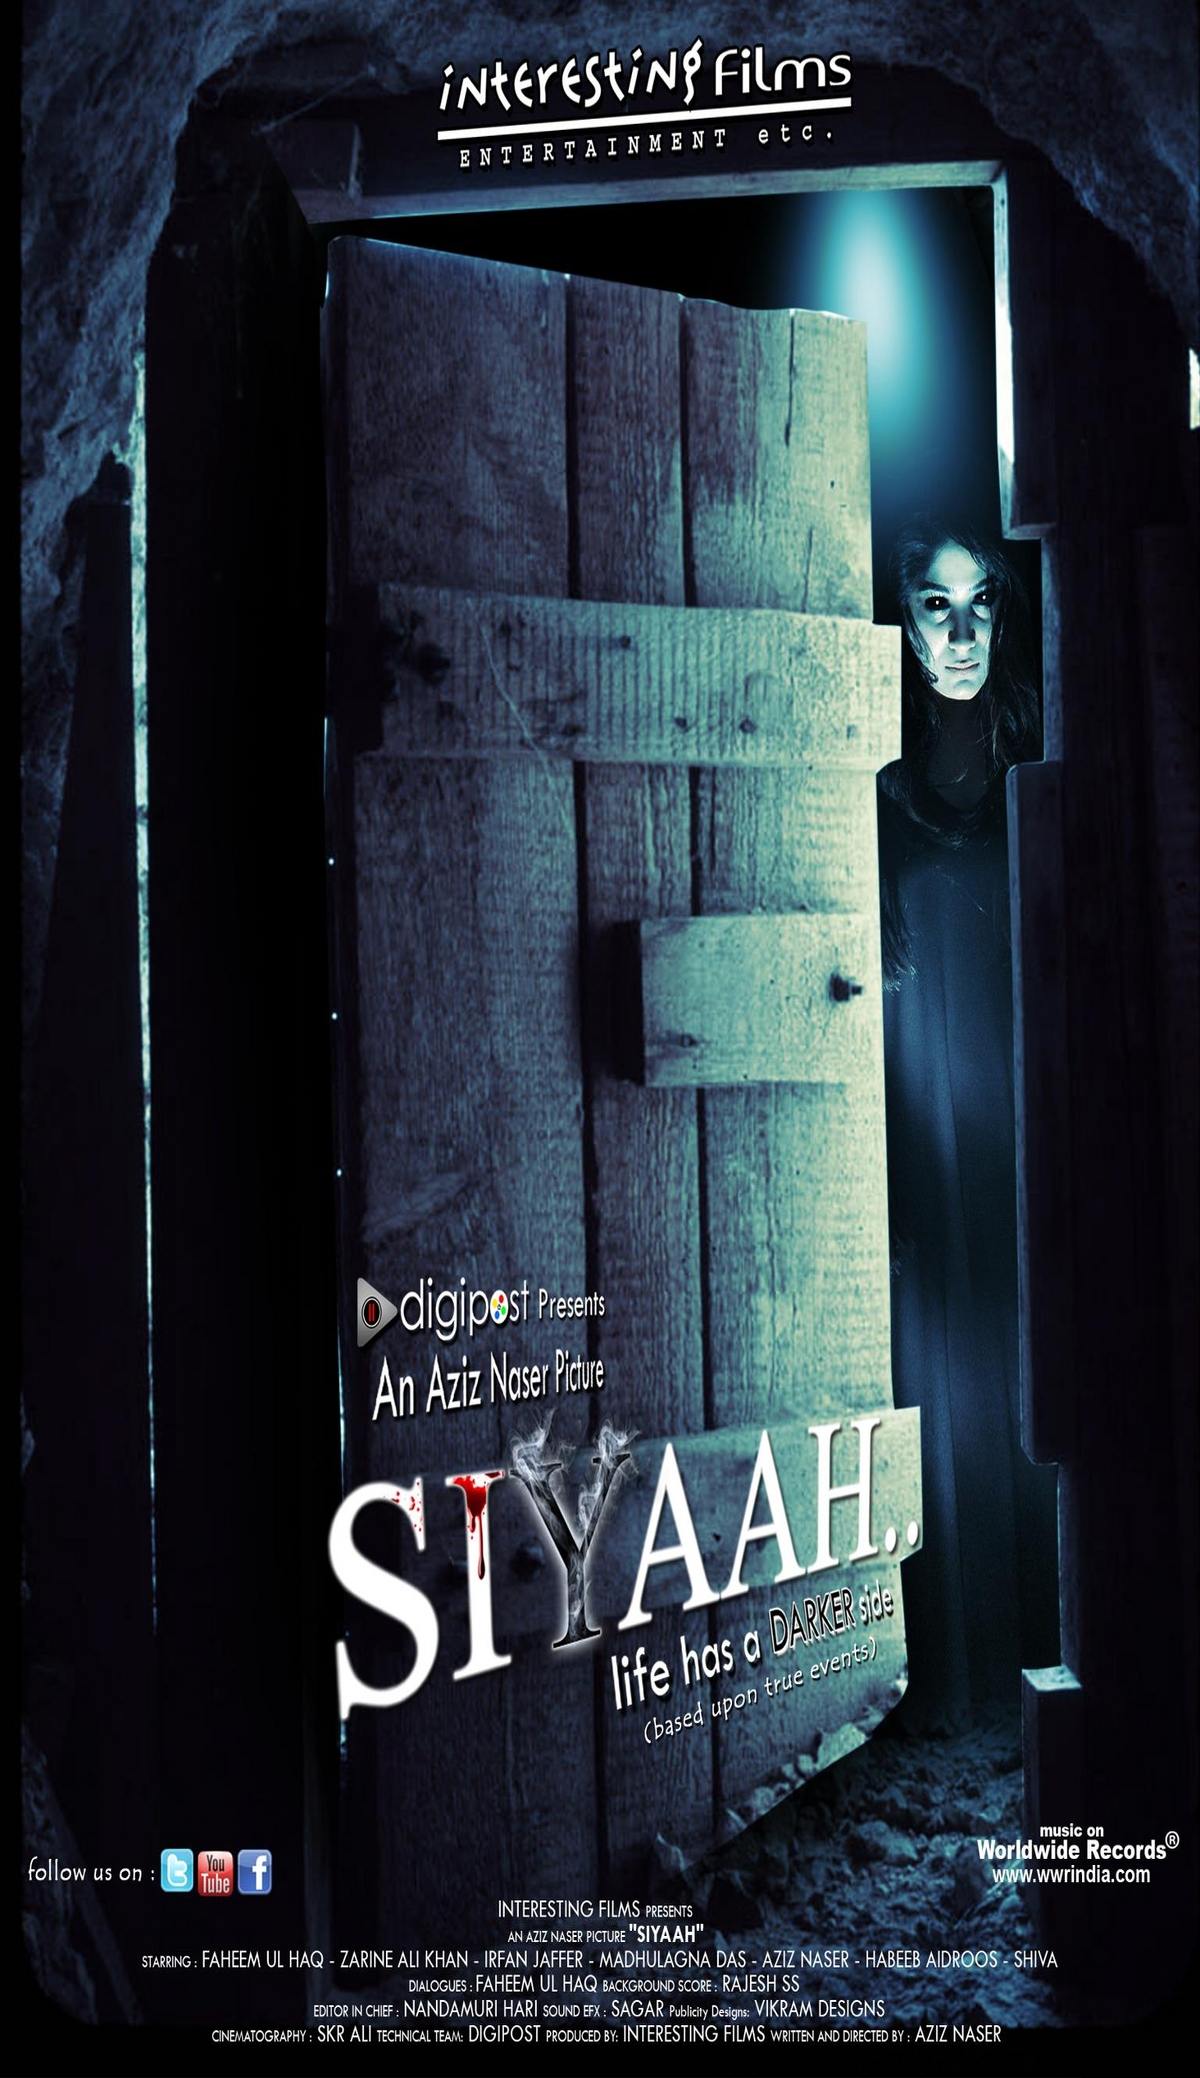 Siyaah.. - Movie Poster #3 (Original)